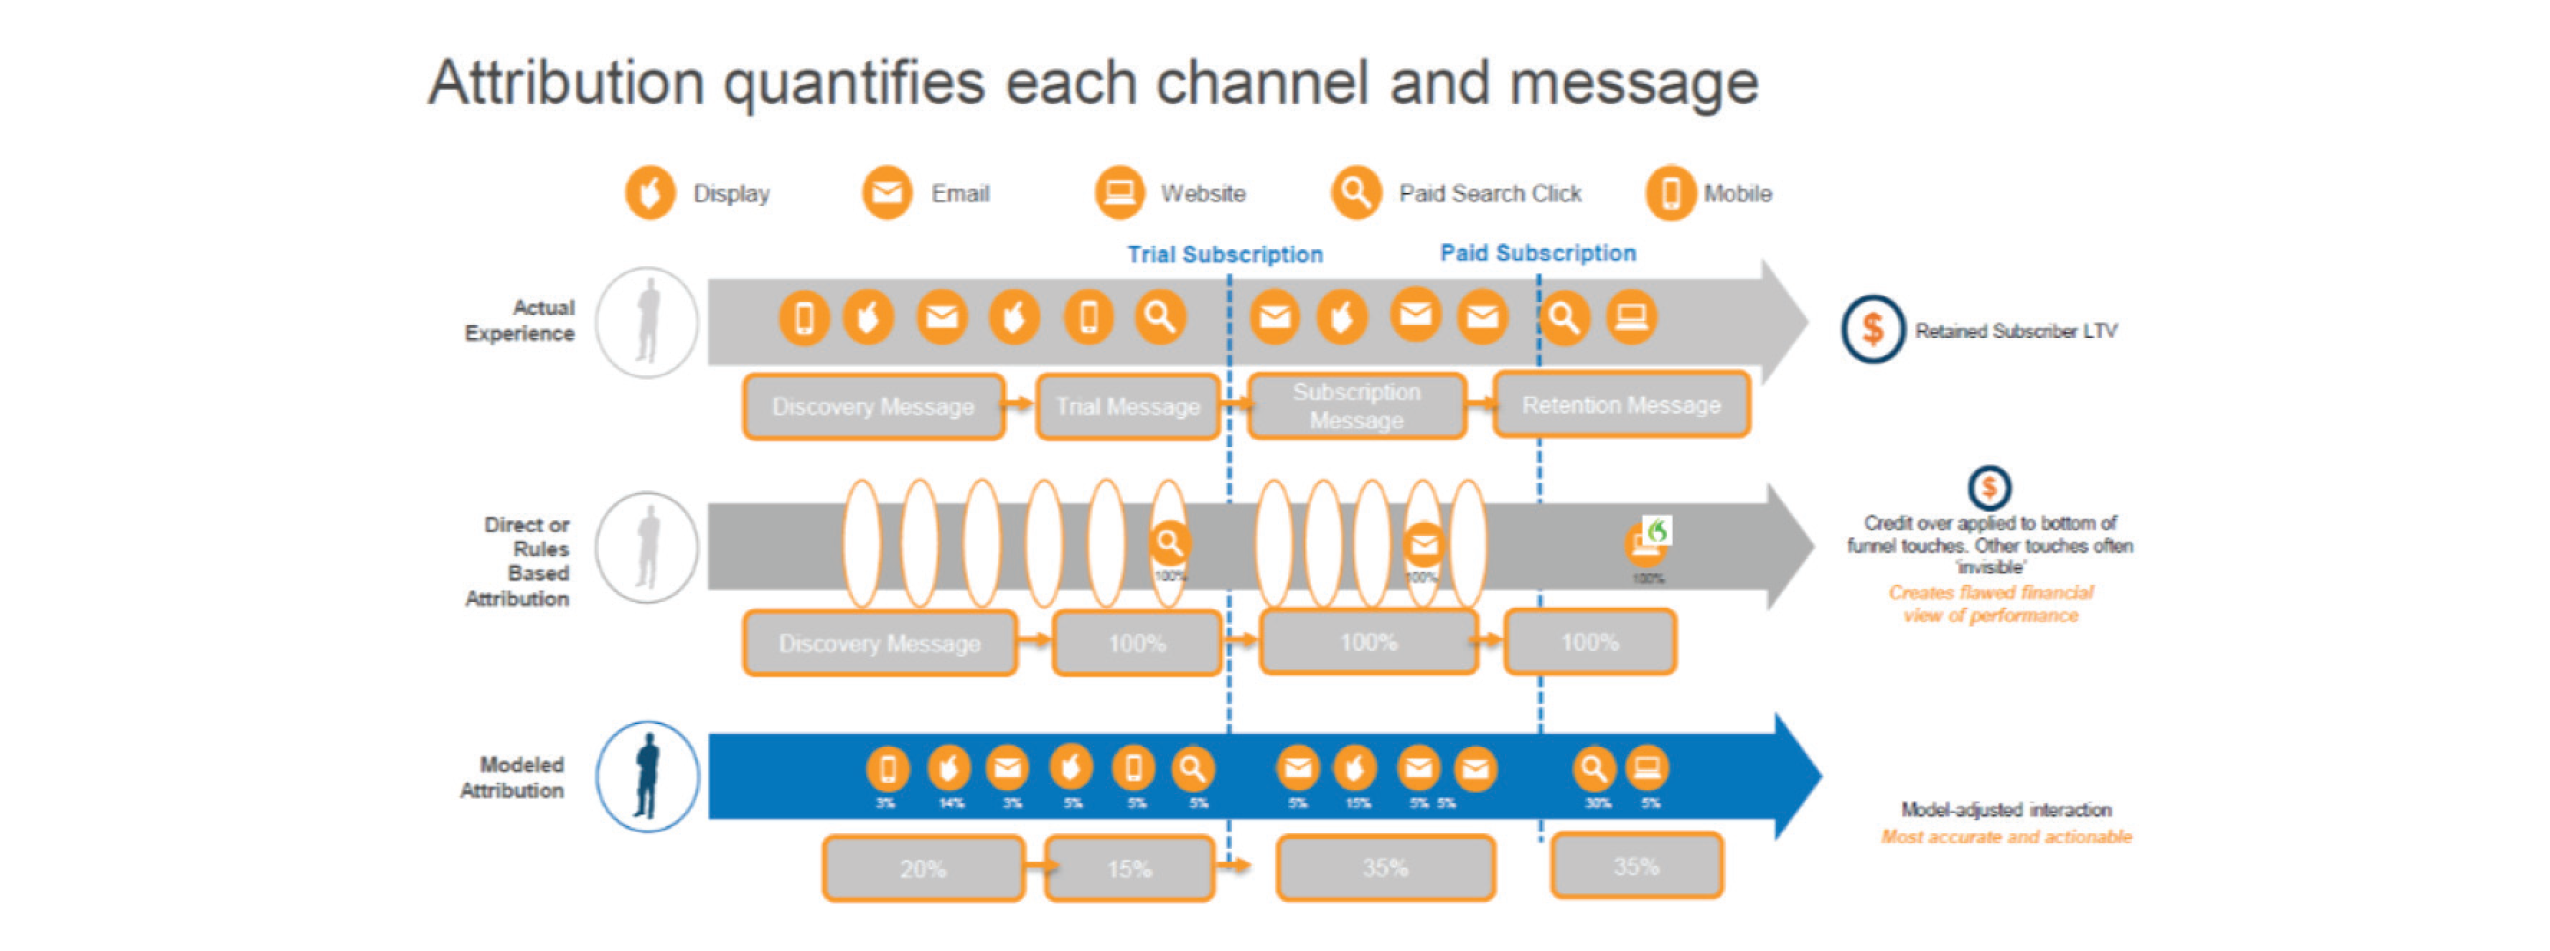 Attribution quantifies each channel and message